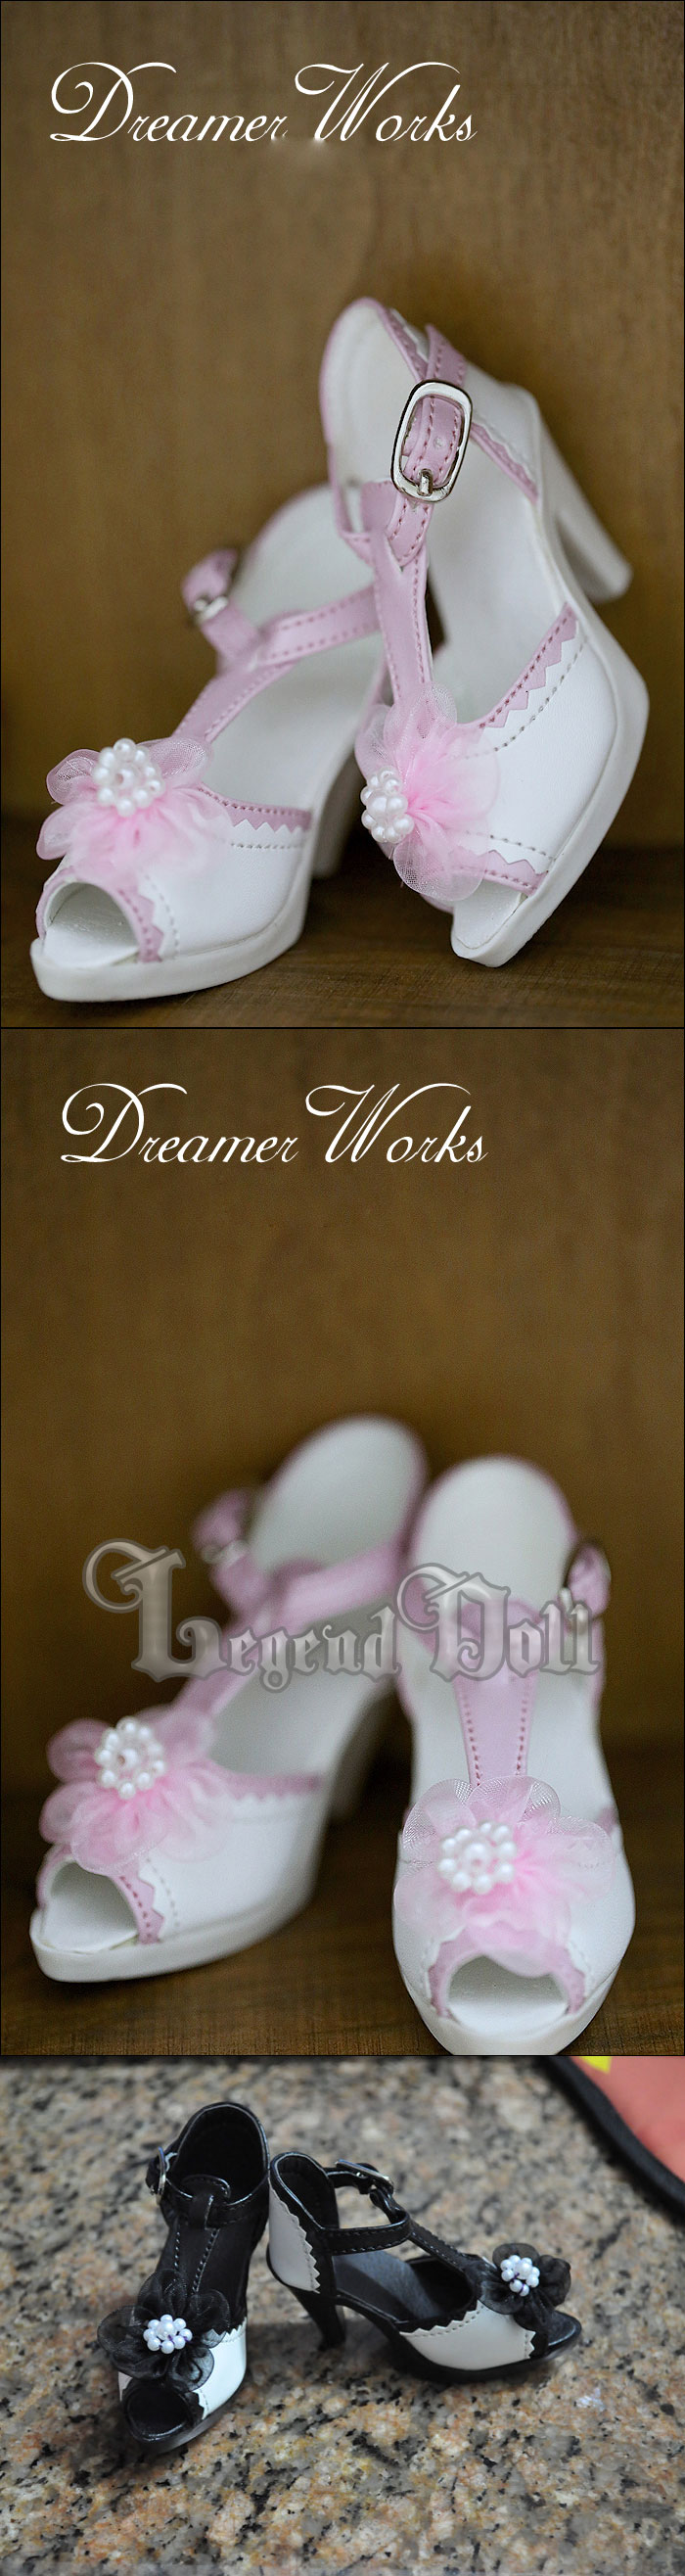 Bjd High Heel Girl Shoes for SD Ball-jointed Doll